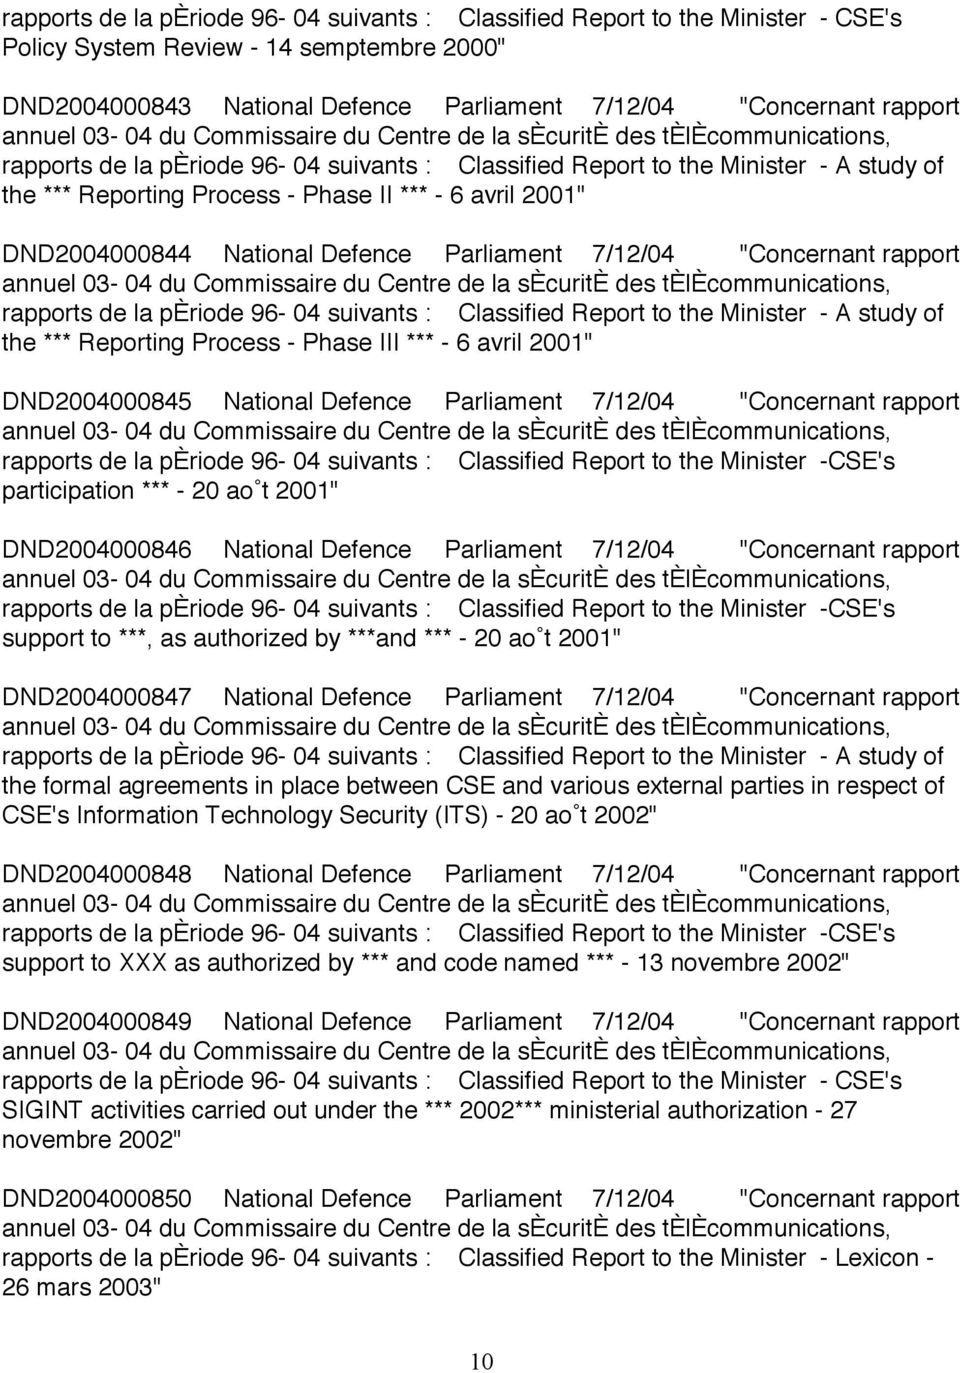 """Concernant rapport rapports de la pèriode 96-04 suivants : Classified Report to the Minister - A study of the *** Reporting Process - Phase III *** - 6 avril 2001"" DND2004000845 National Defence"